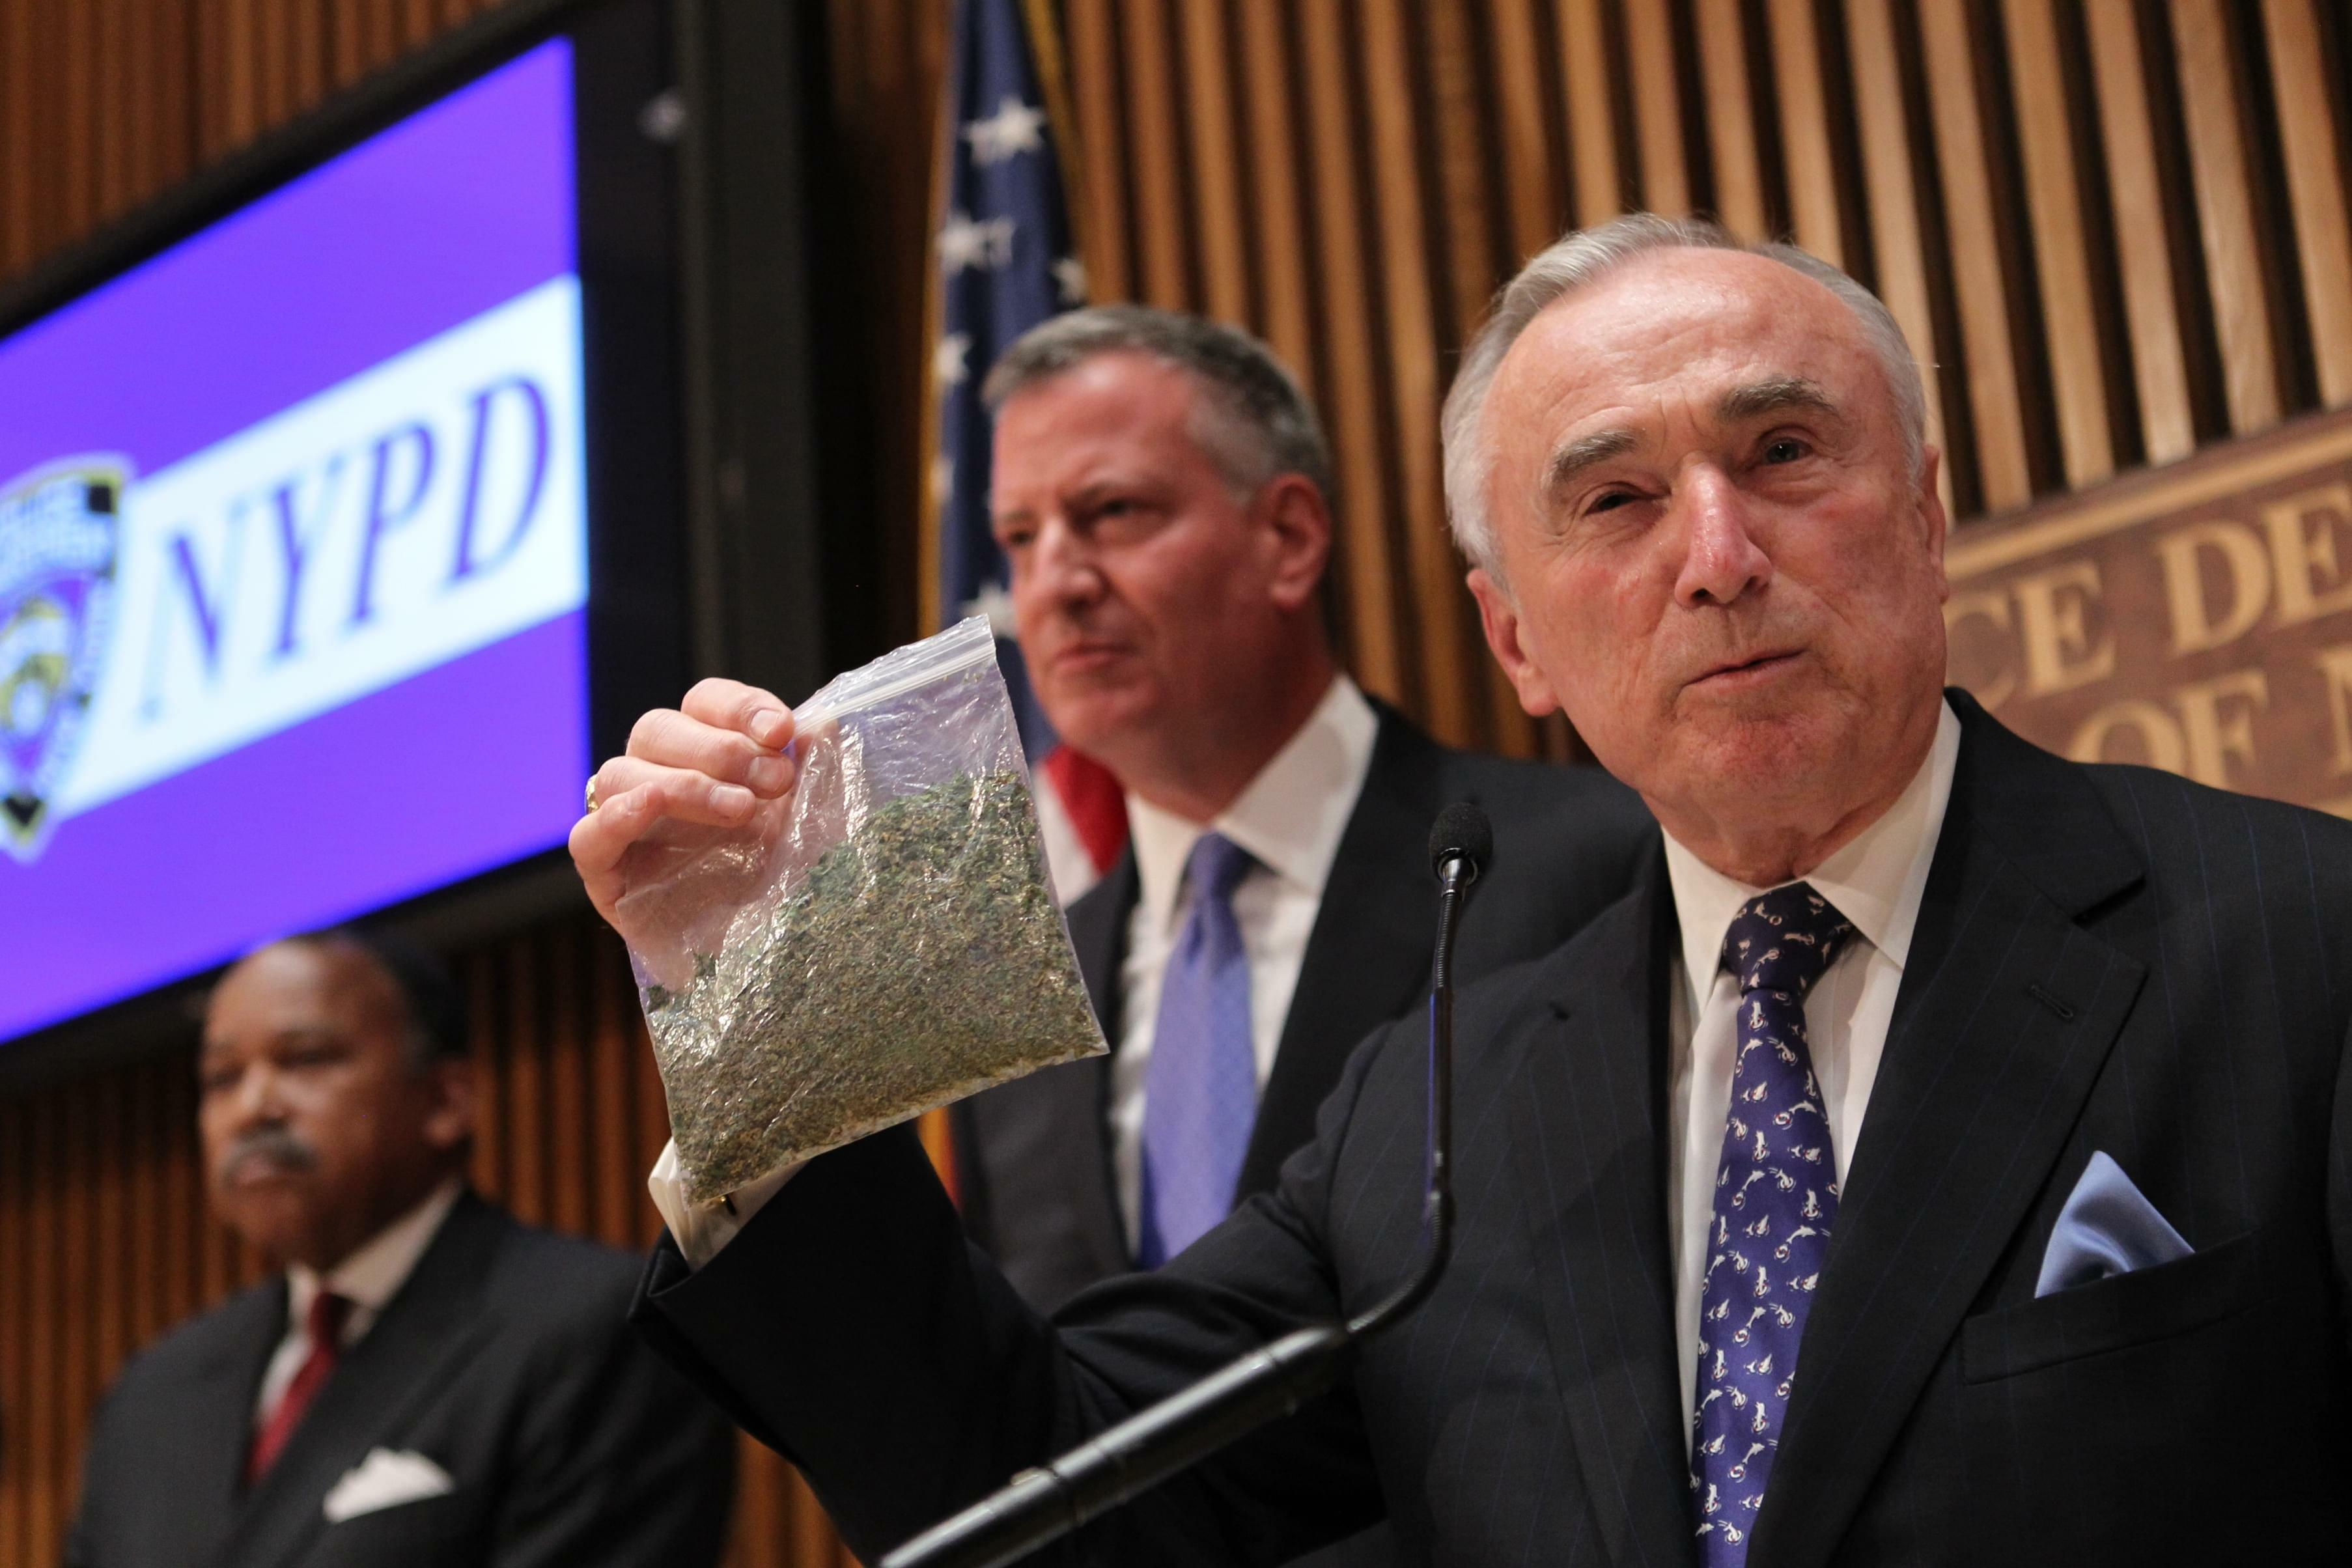 NYPD commissioner blames legal marijuana in Colorado for increase in New York shootings